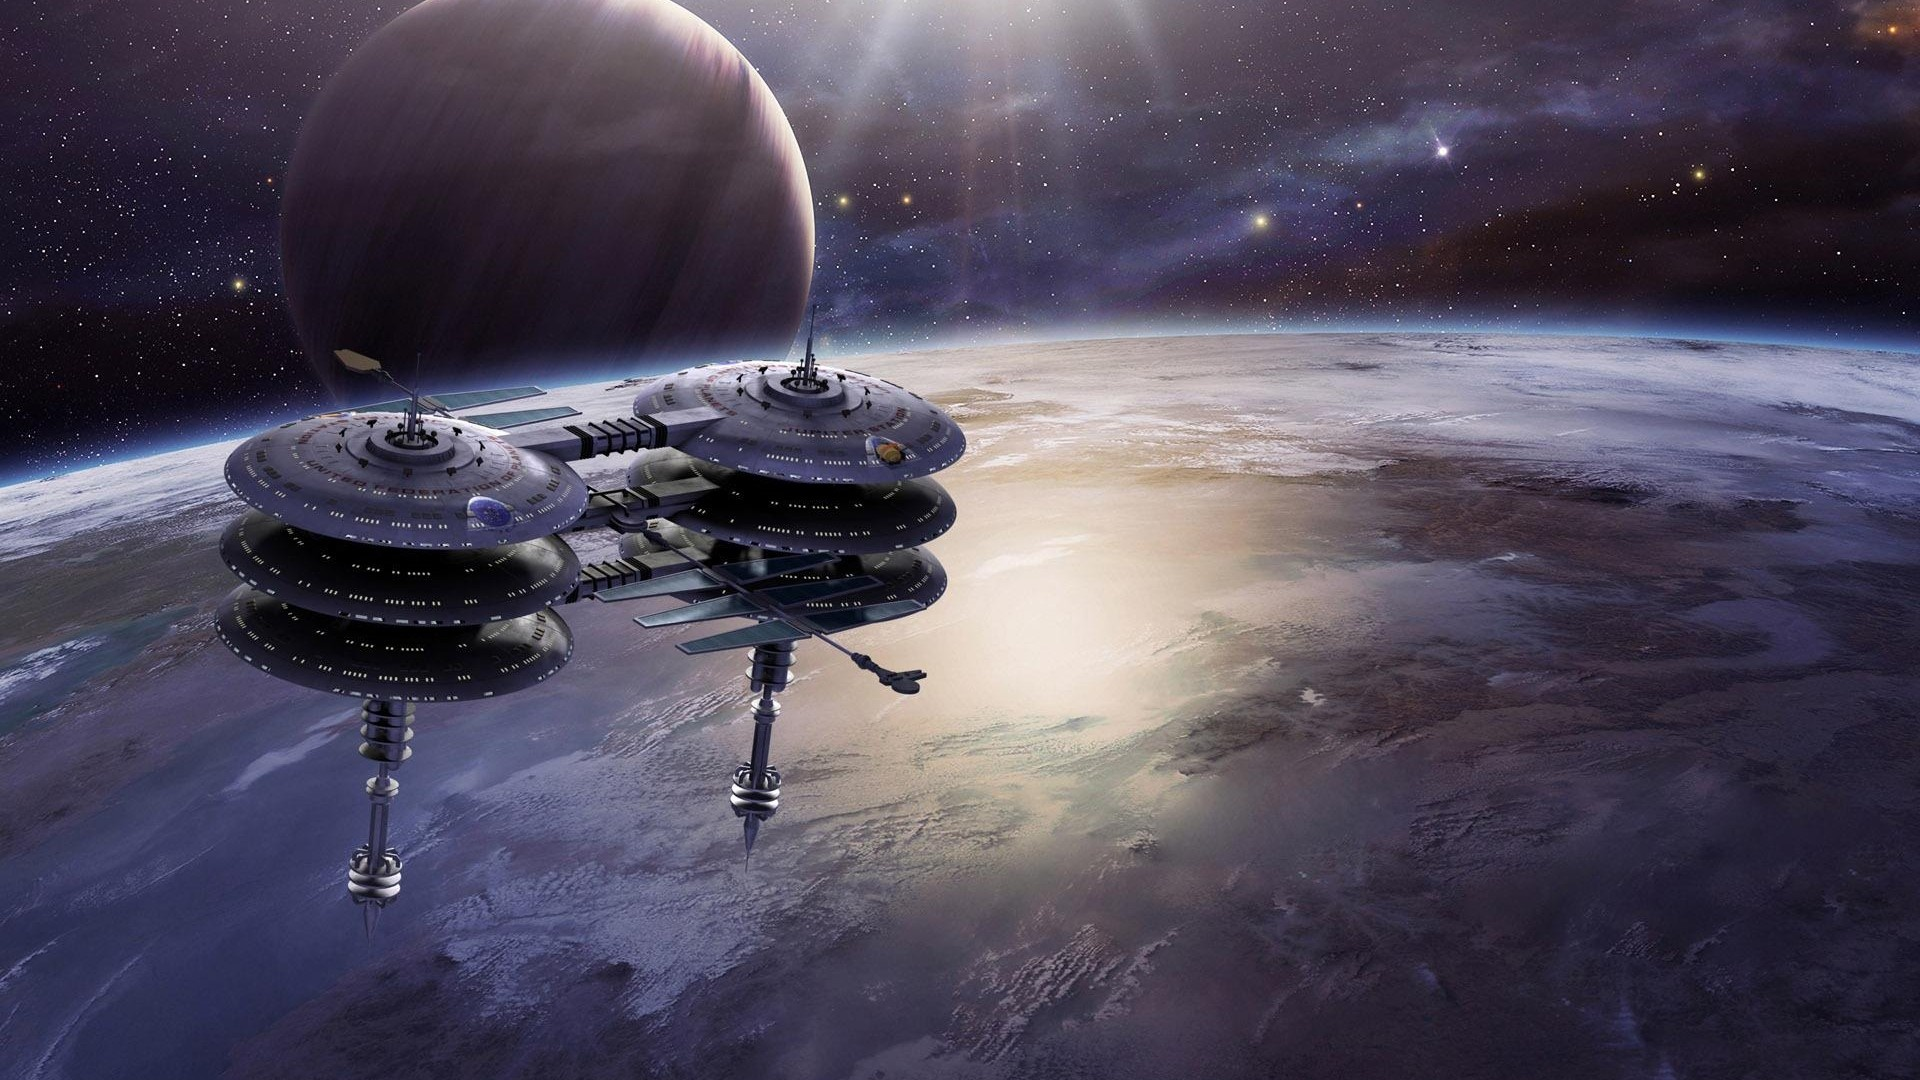 Space Station free pic